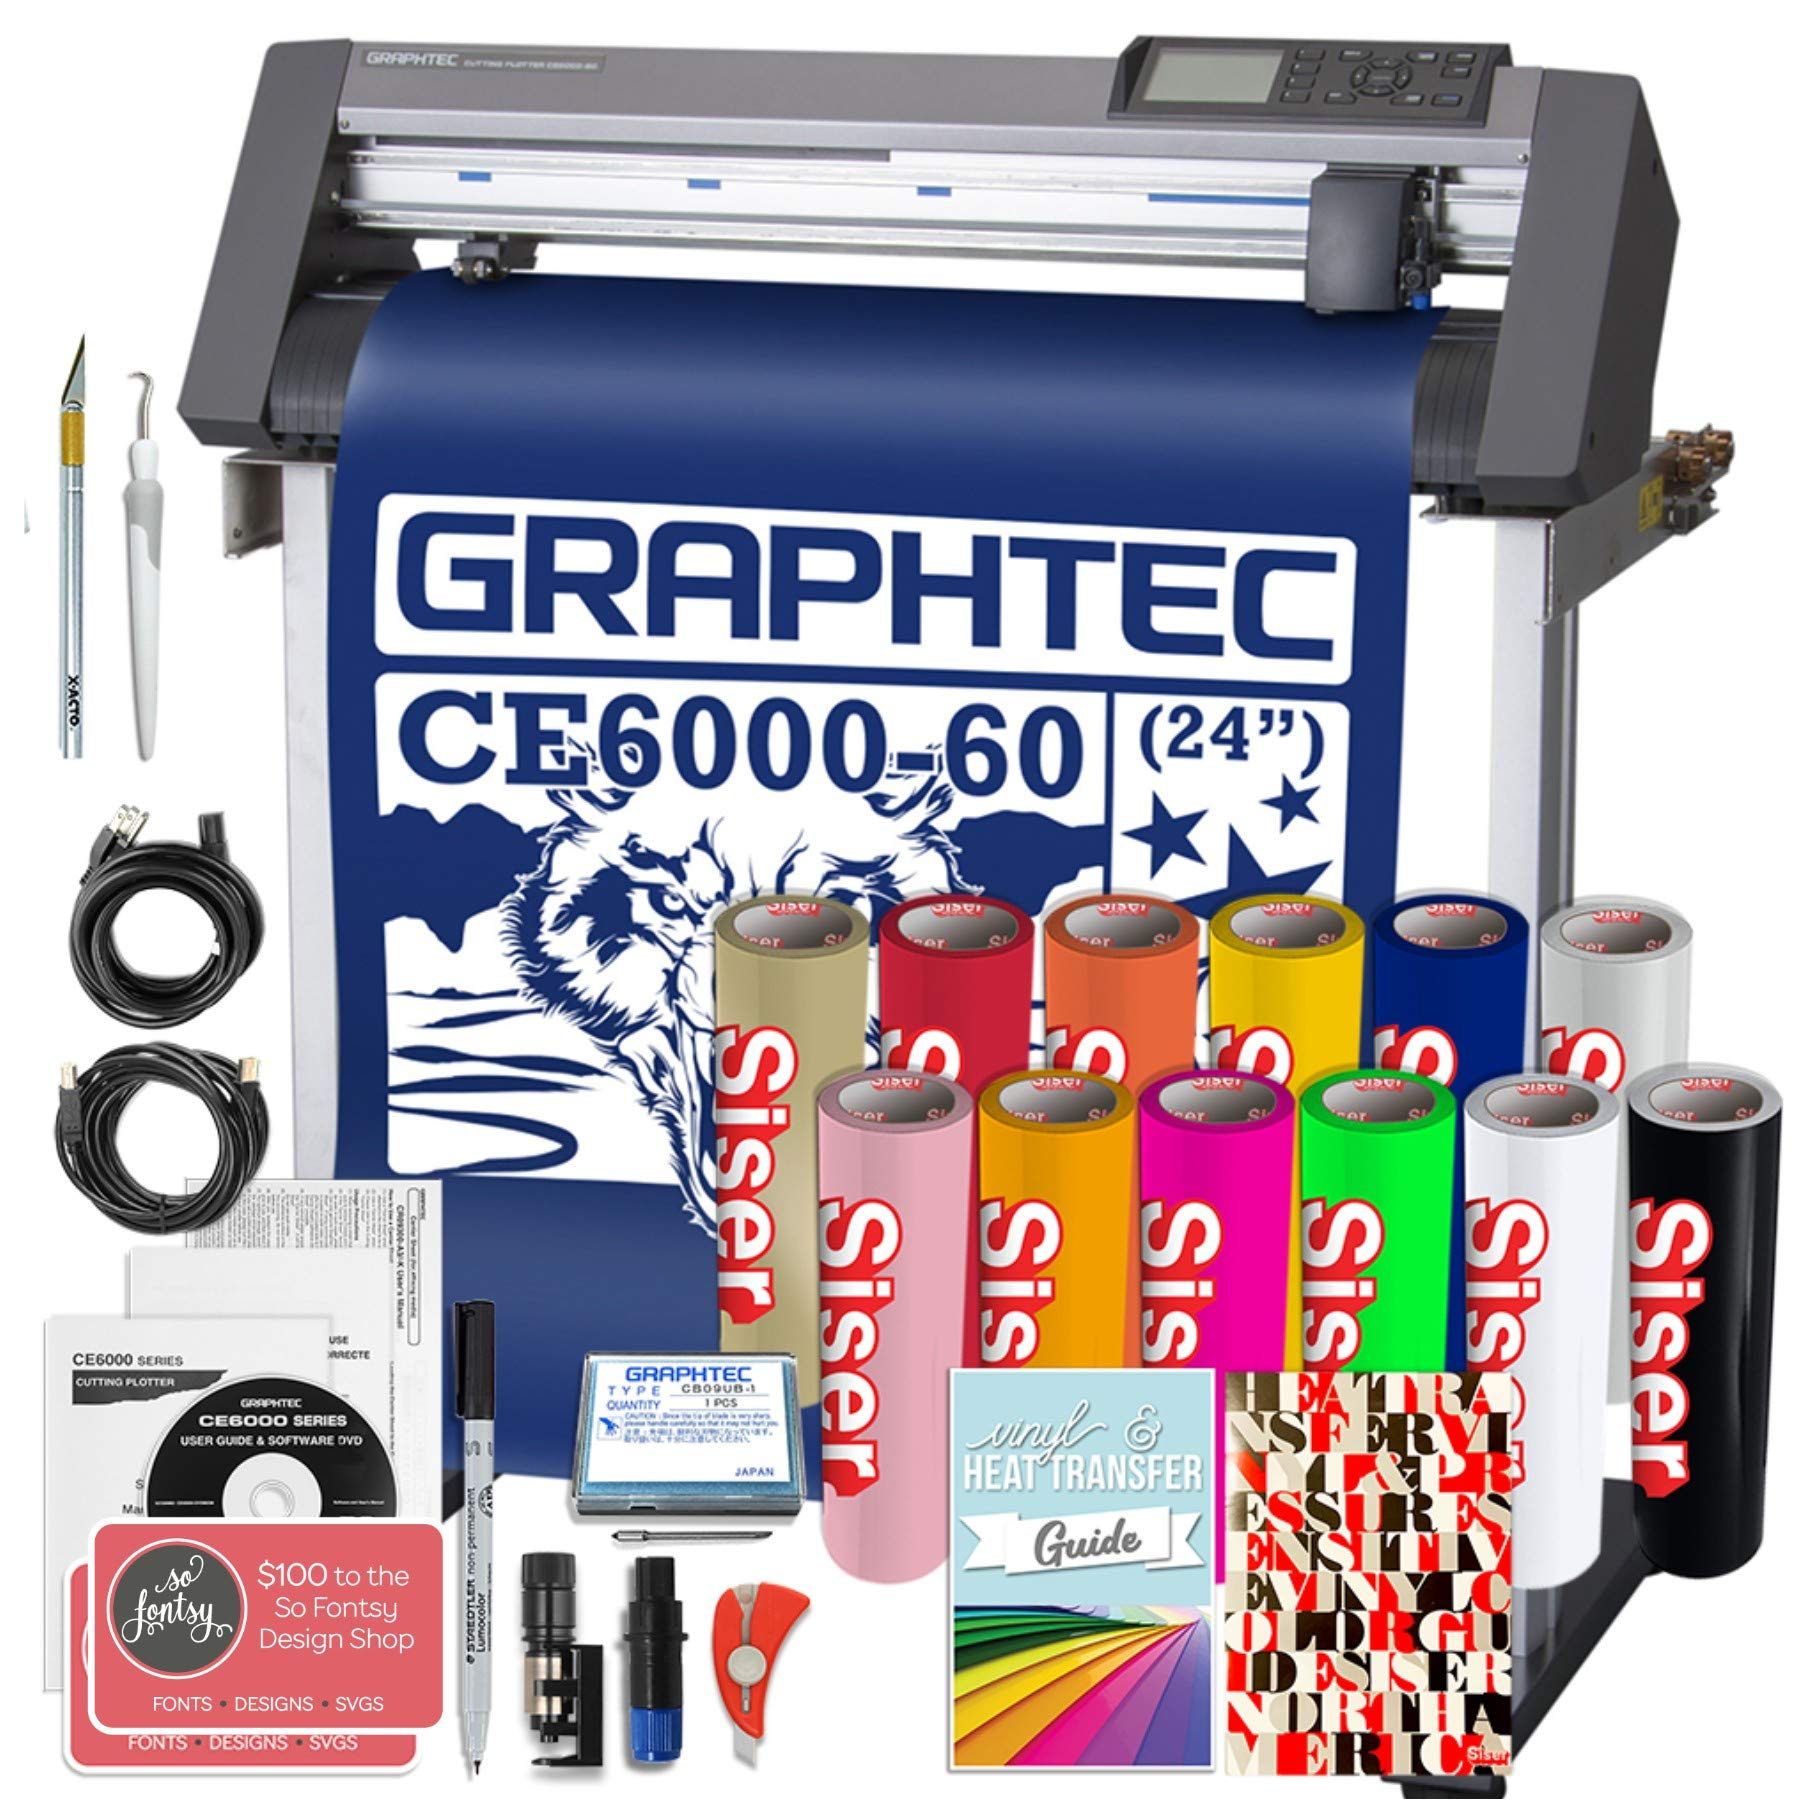 Graphtec Plus CE6000-60 24 Inch Professional Vinyl Cutter with Bonus $2100 in Software, Siser Easyweed HTV, and 2 Year Warranty